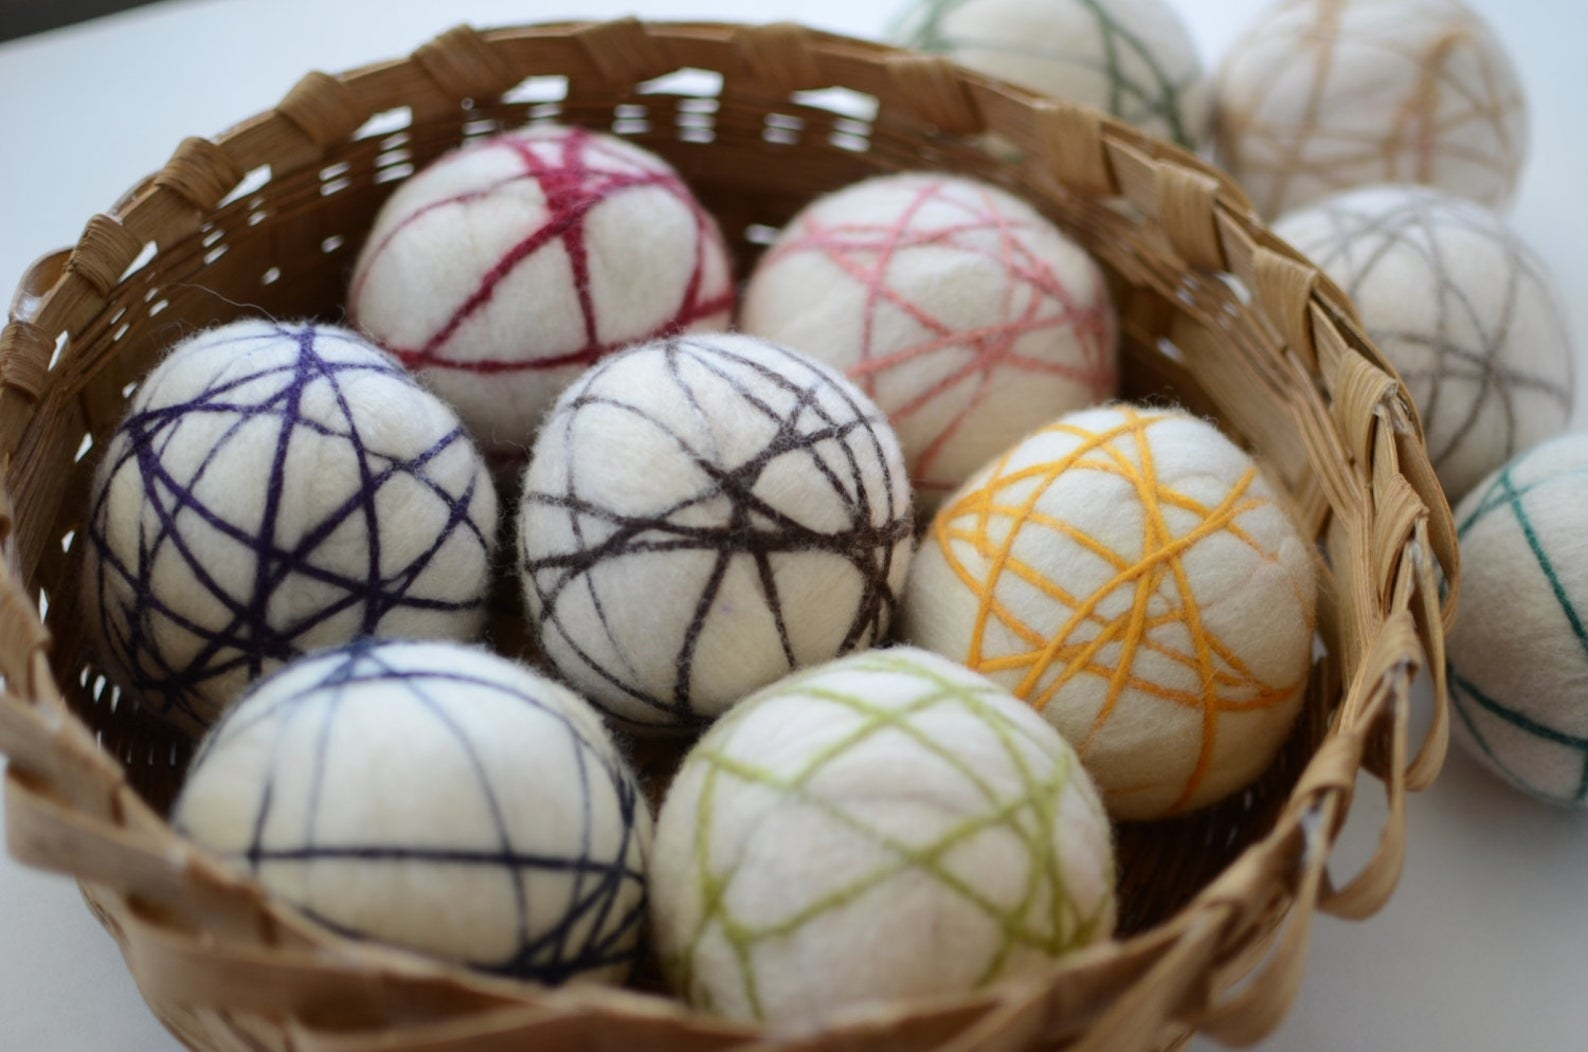 The dryer balls with different colors of thread